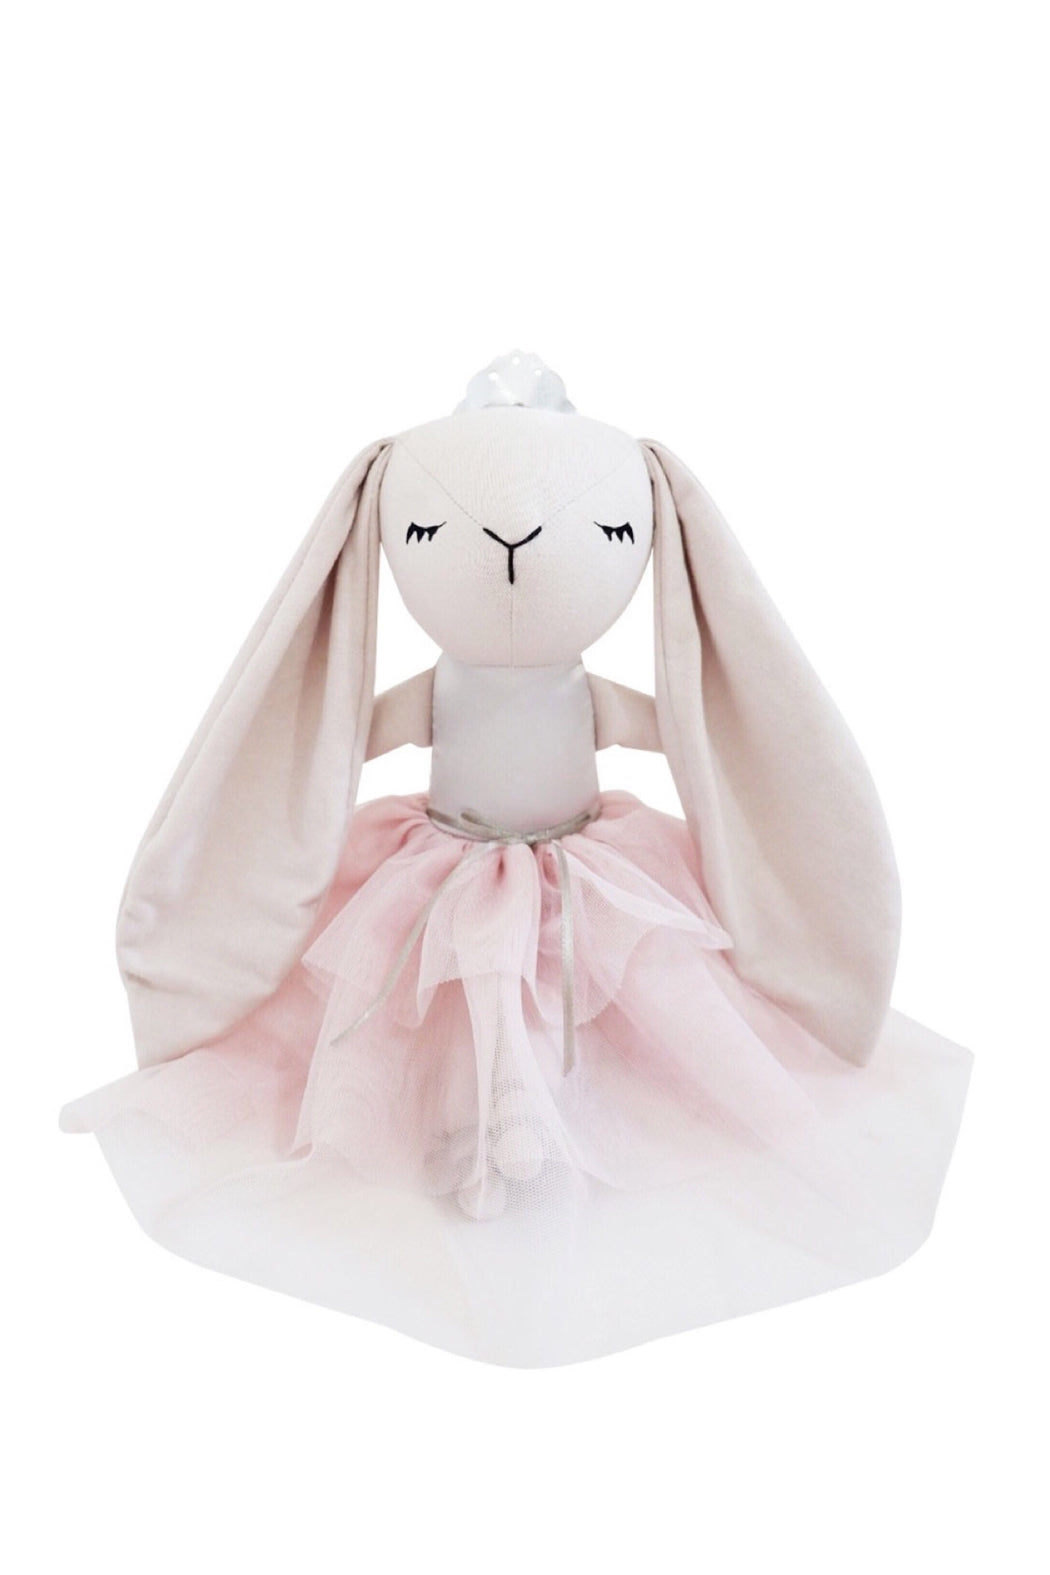 Bunny Princess Pale Rose, Toy, Spinkie - 3LittlePicks